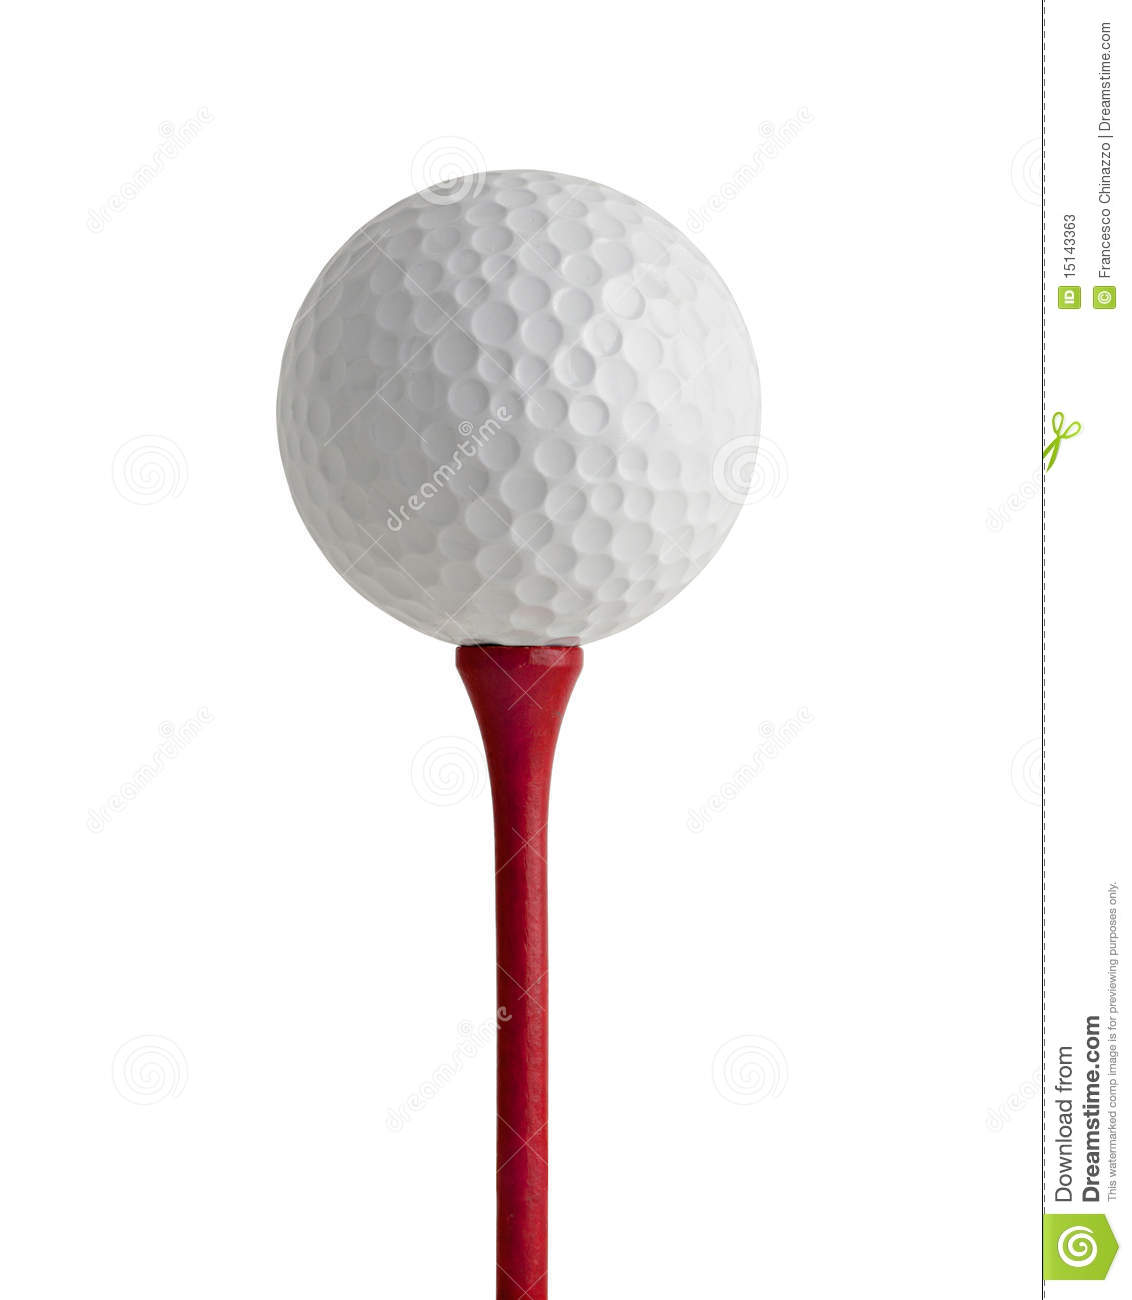 Golf Ball On Red Tee Stock Photos - Image: 15143363